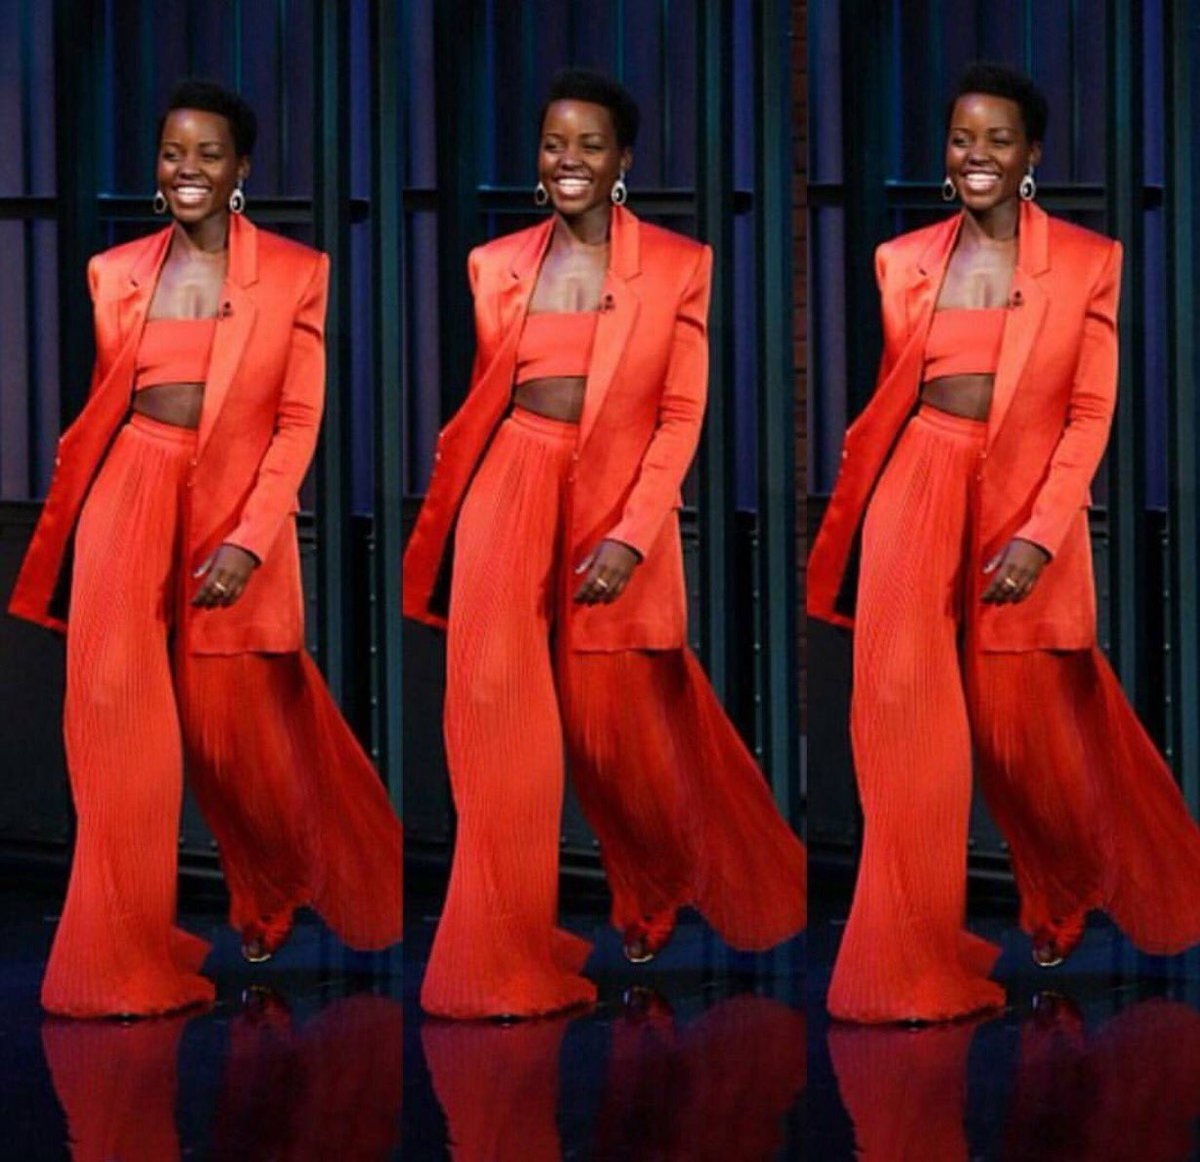 Lawdahmercy RT @LookAtDustin: Damn Lupita https://t.co/pItvHC7egW